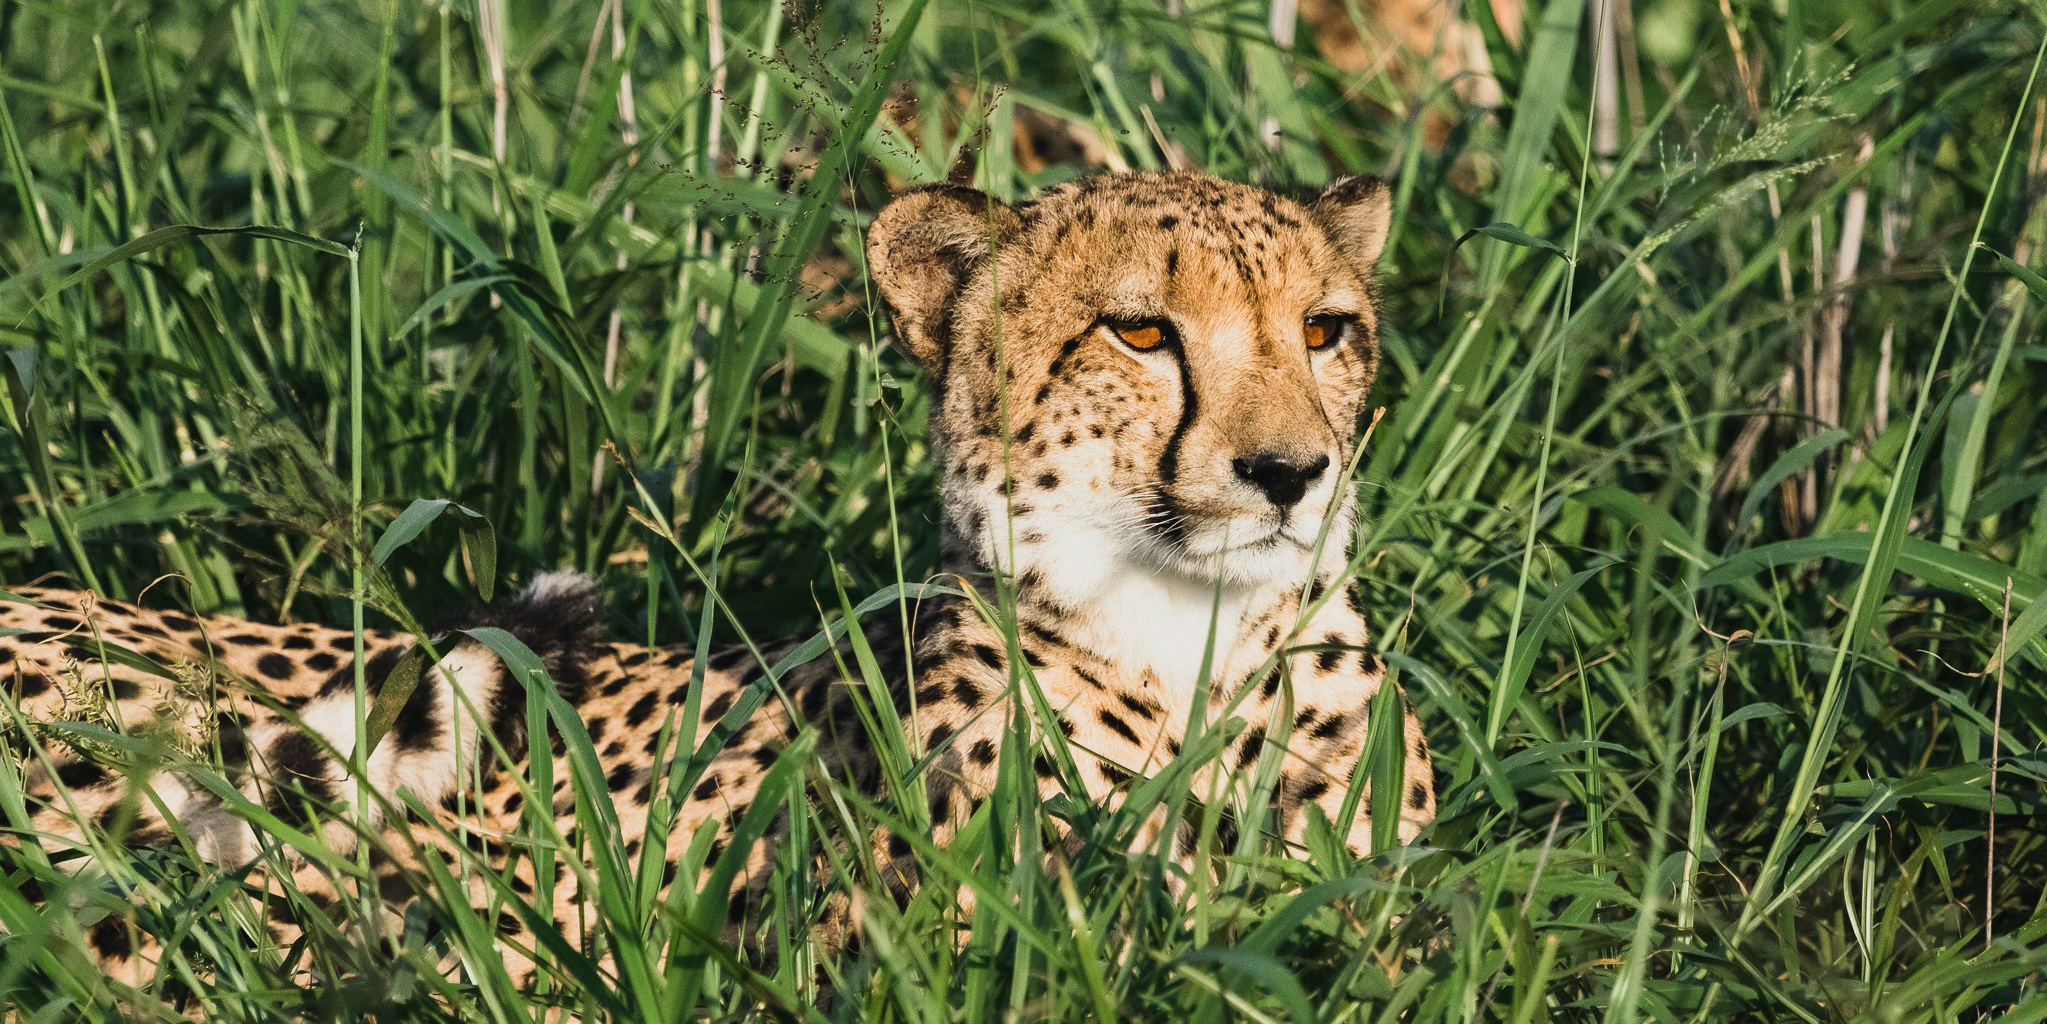 A male cheetah peers through tall grasses. This is one of the big cats being monitored by GVI in the cheetah conservation program.